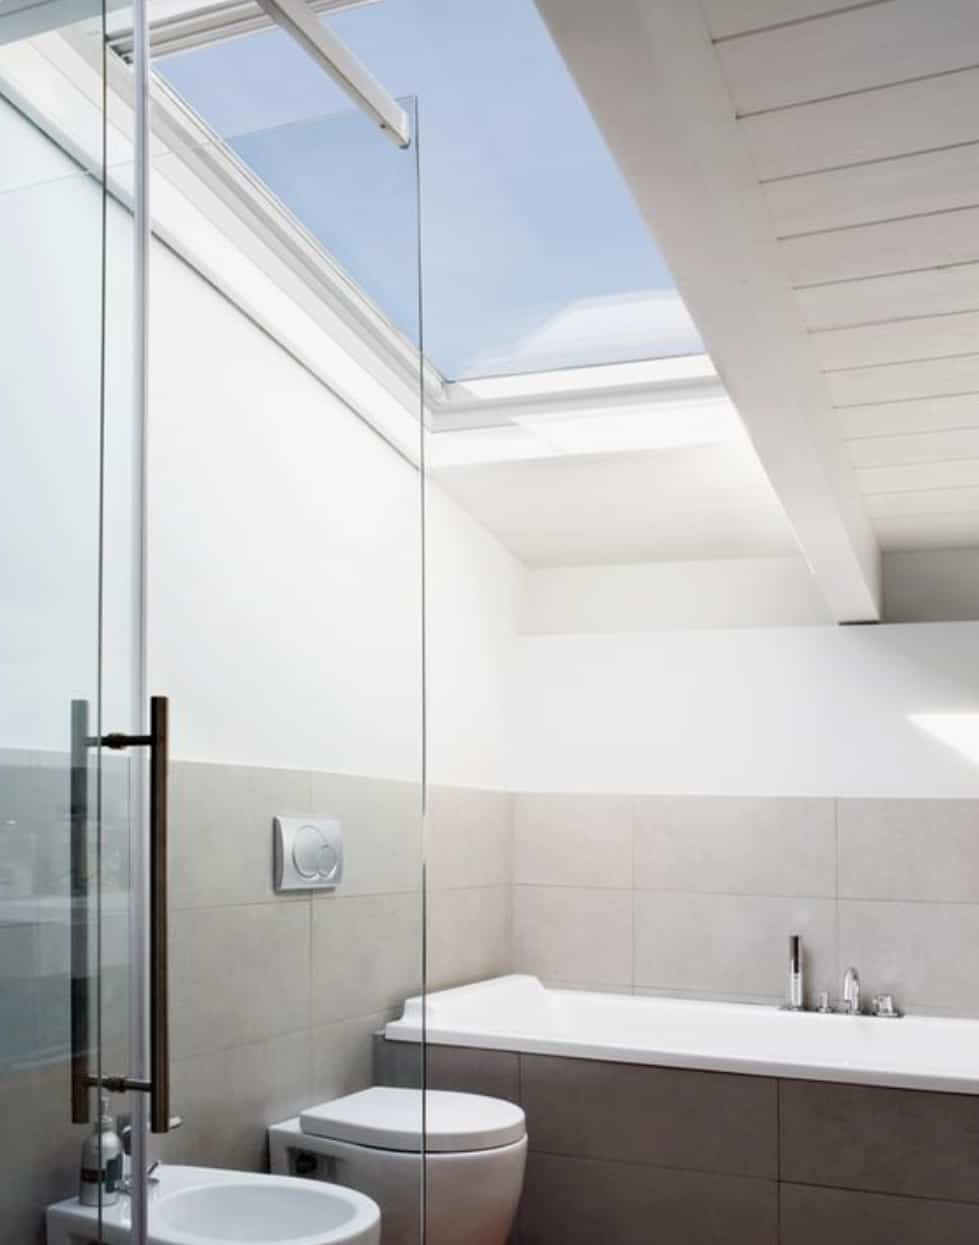 Choosing a VELUX for a bathroom